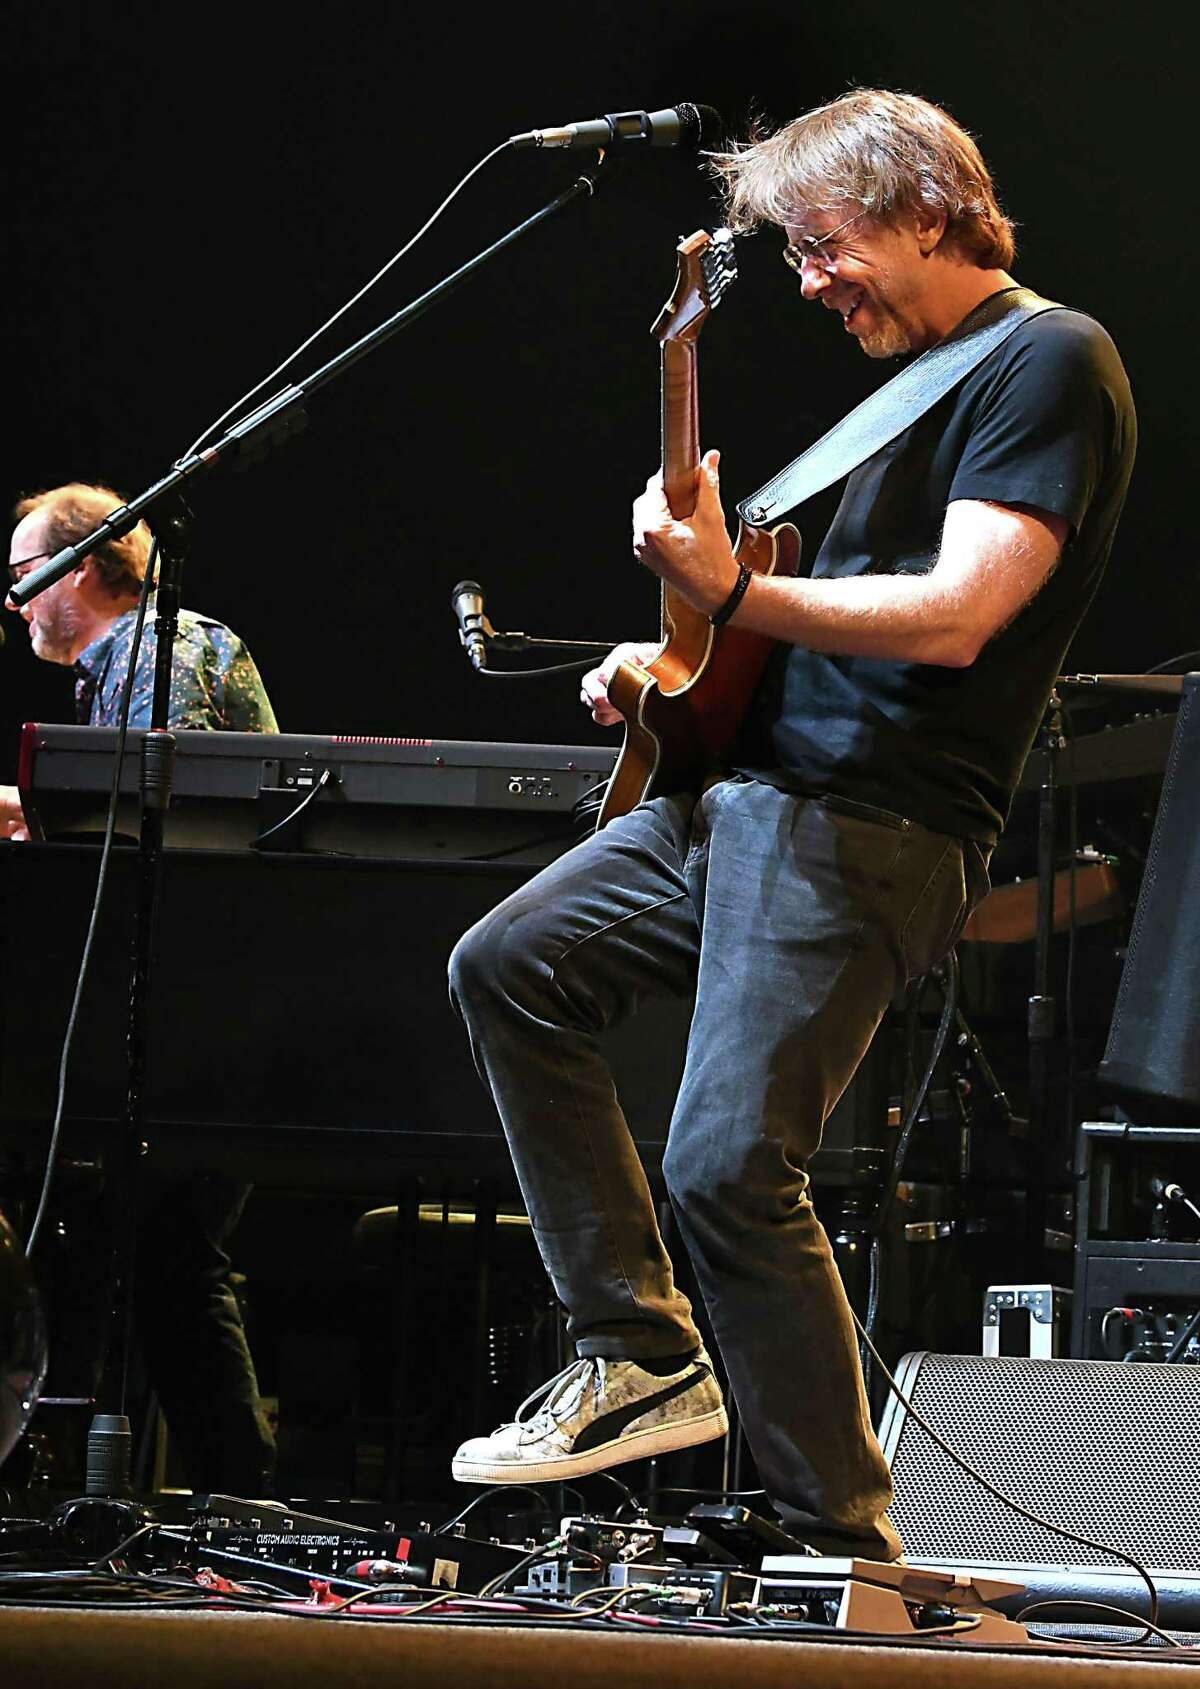 Lead vocalist and guitarist Trey Anastasio plays his guitar as Phish performs at the Times Union Center on Tuesday, Oct. 16, 2018 in Albany, N.Y. (Lori Van Buren/Times Union)